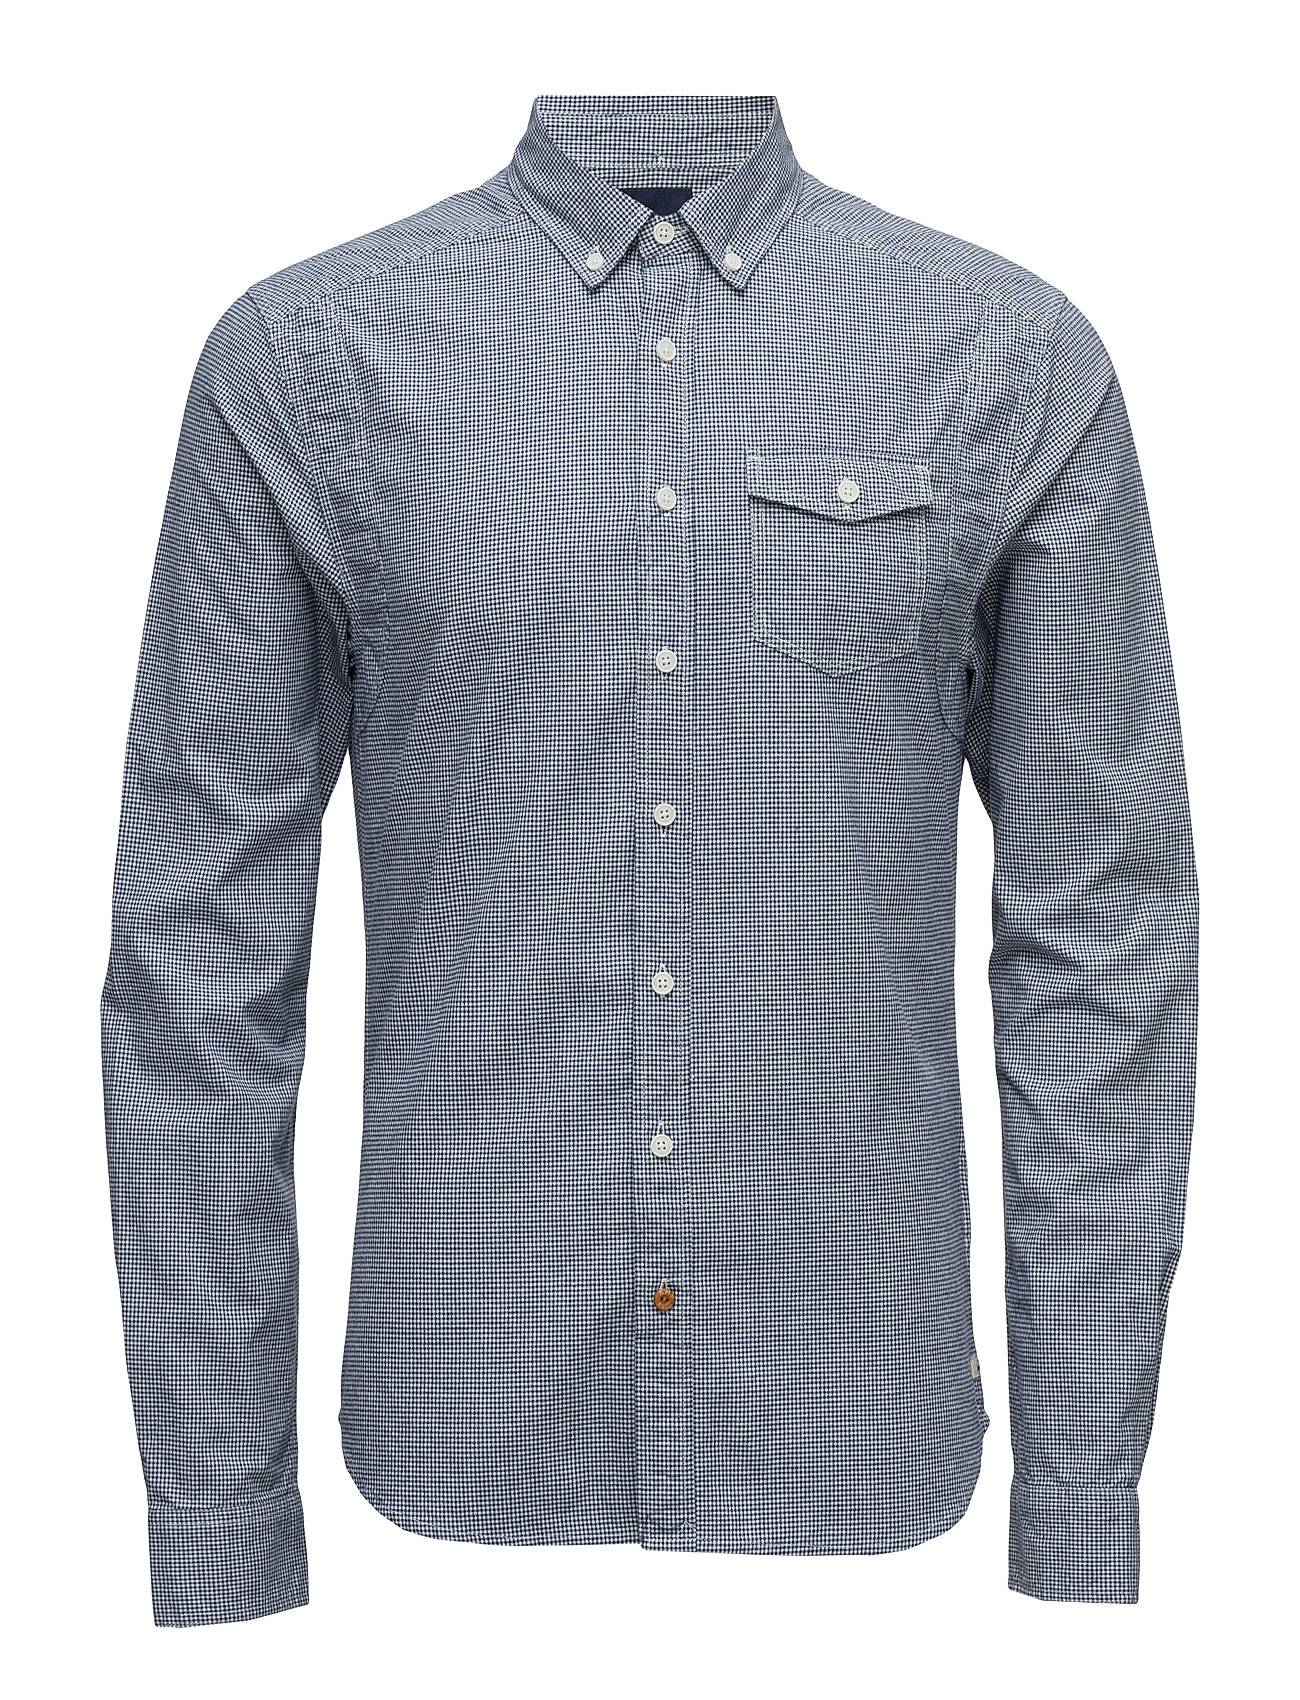 Scotch & Soda Lightweight Brushed Flannel Shirt With Workwear Elements